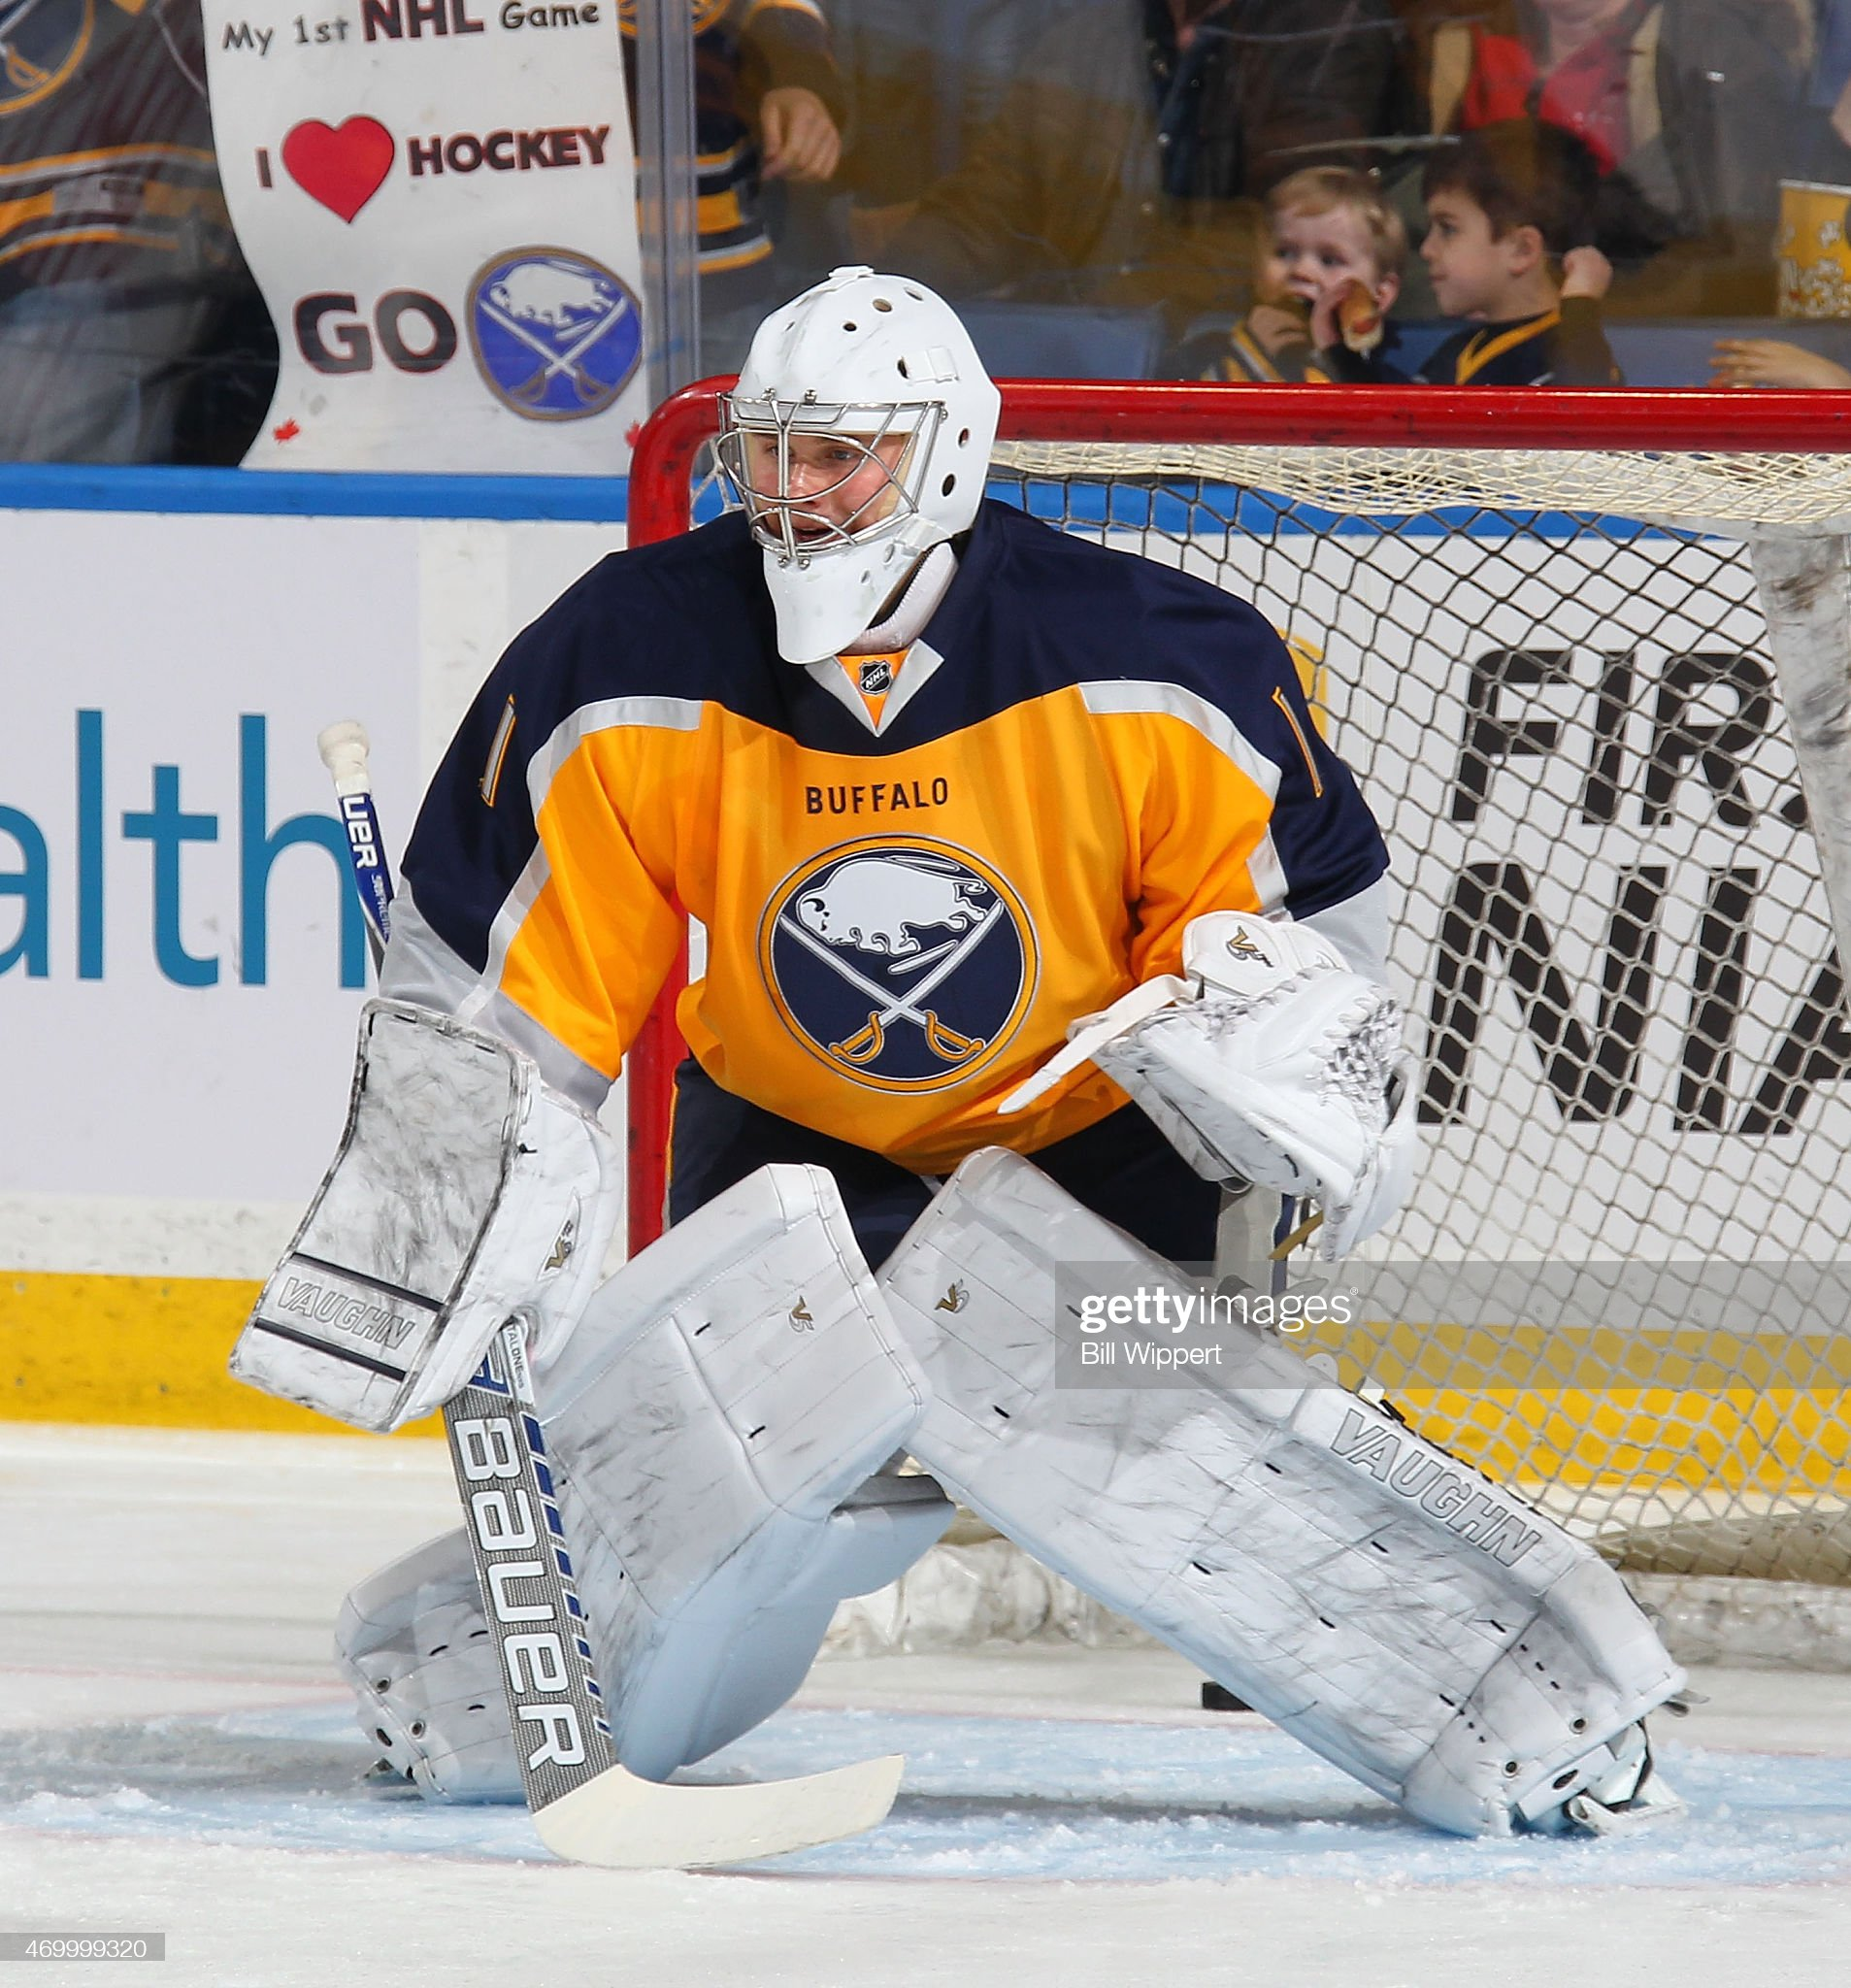 andrey-makarov-of-the-buffalo-sabres-war